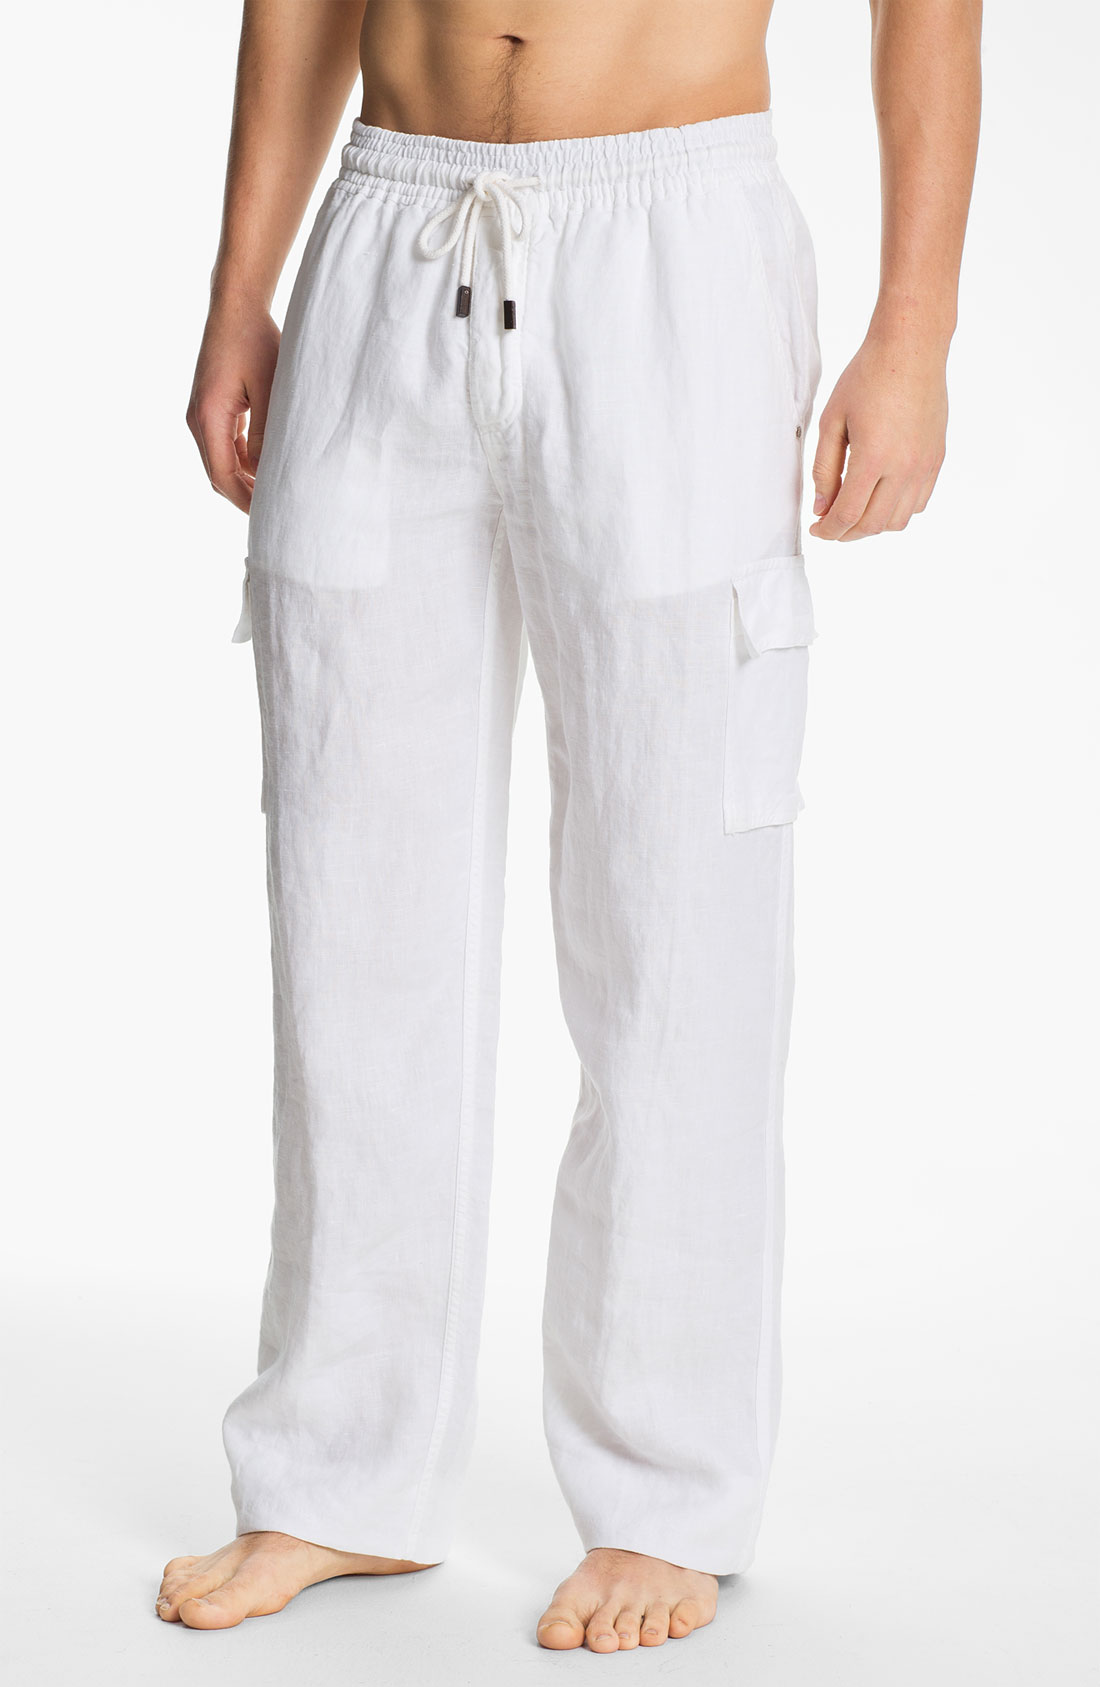 white linen pants mens drawstring - Pi Pants